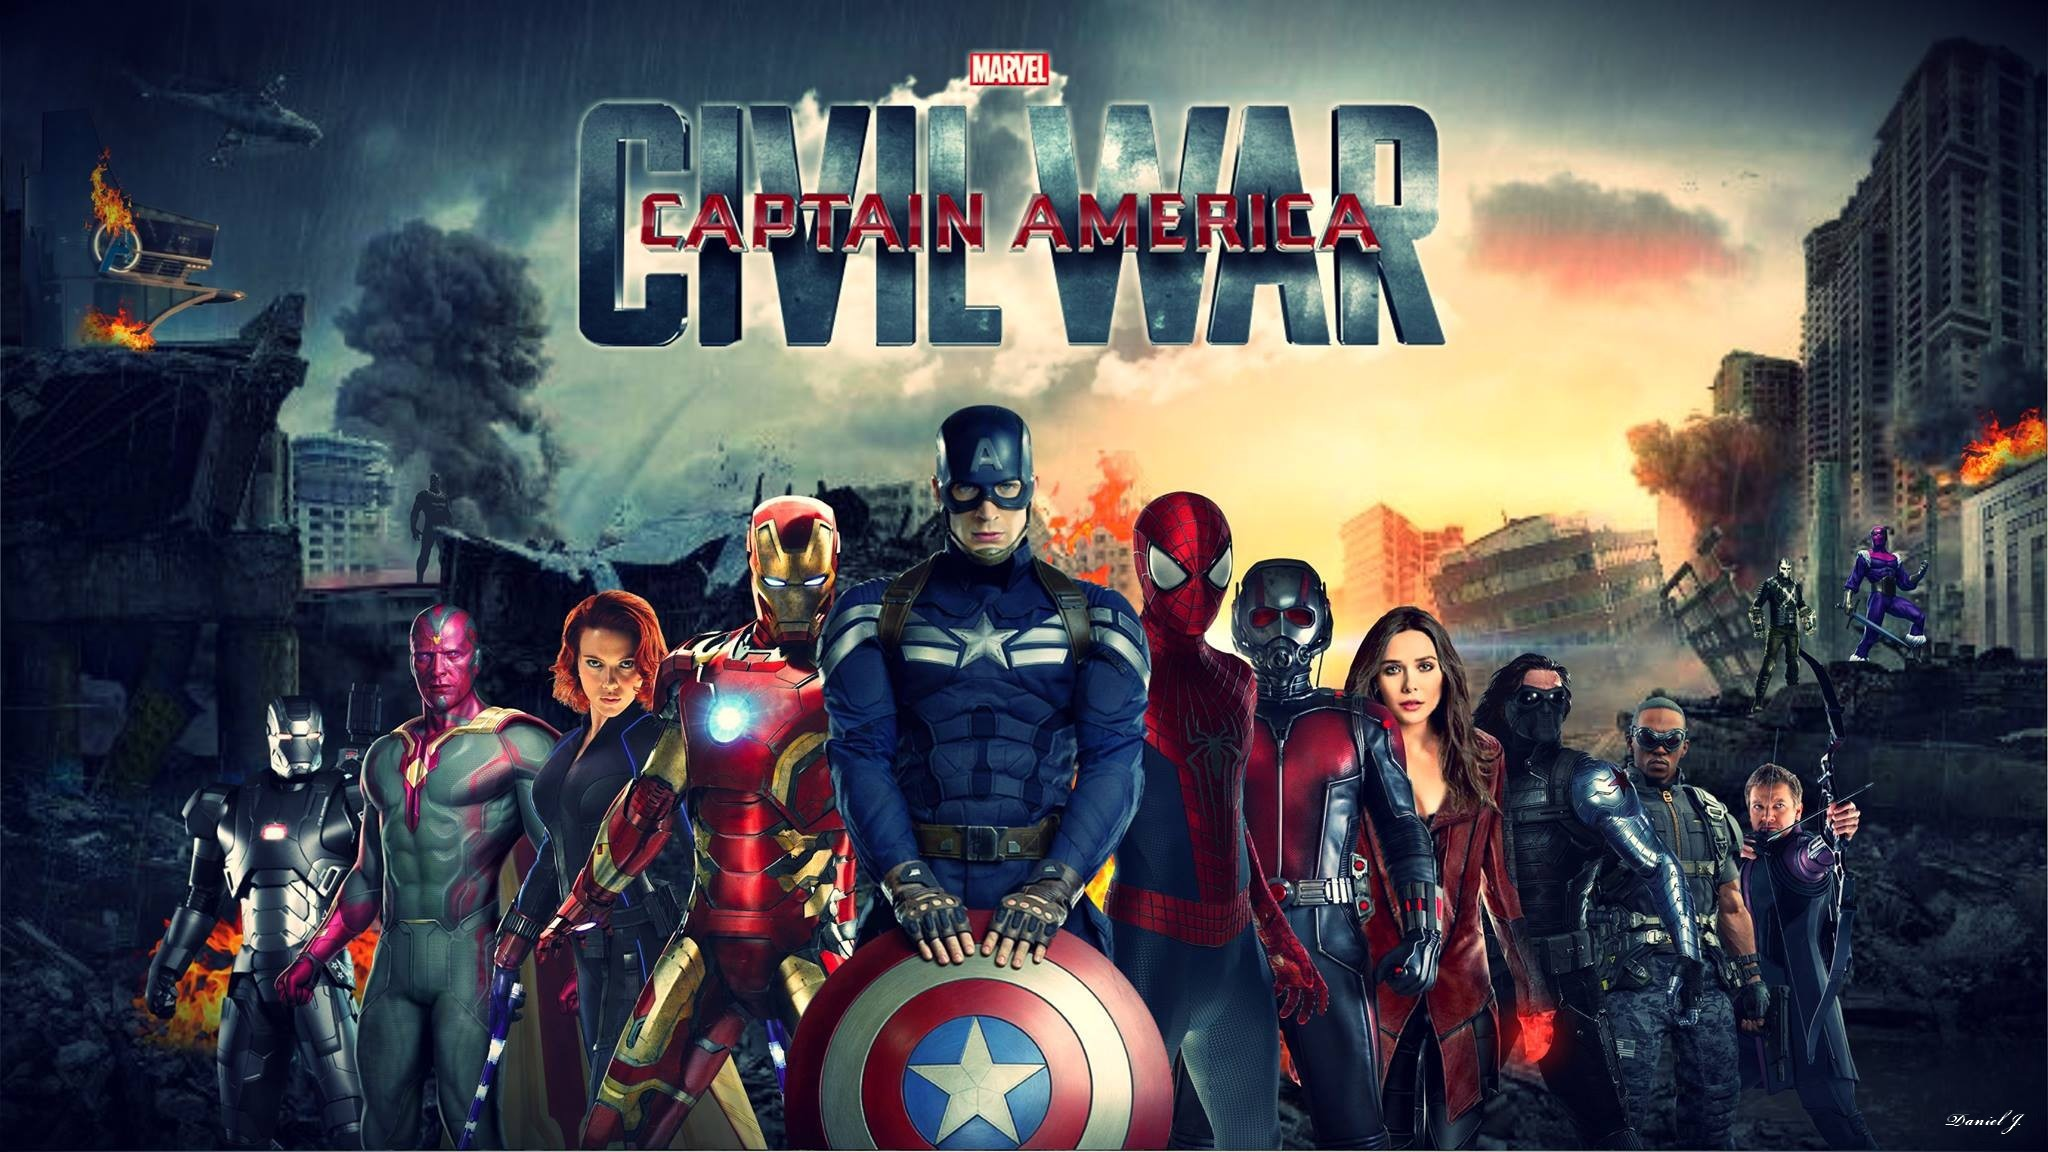 2048x1152 Captain America Civil War Wallpapers Images Photos Pictures.